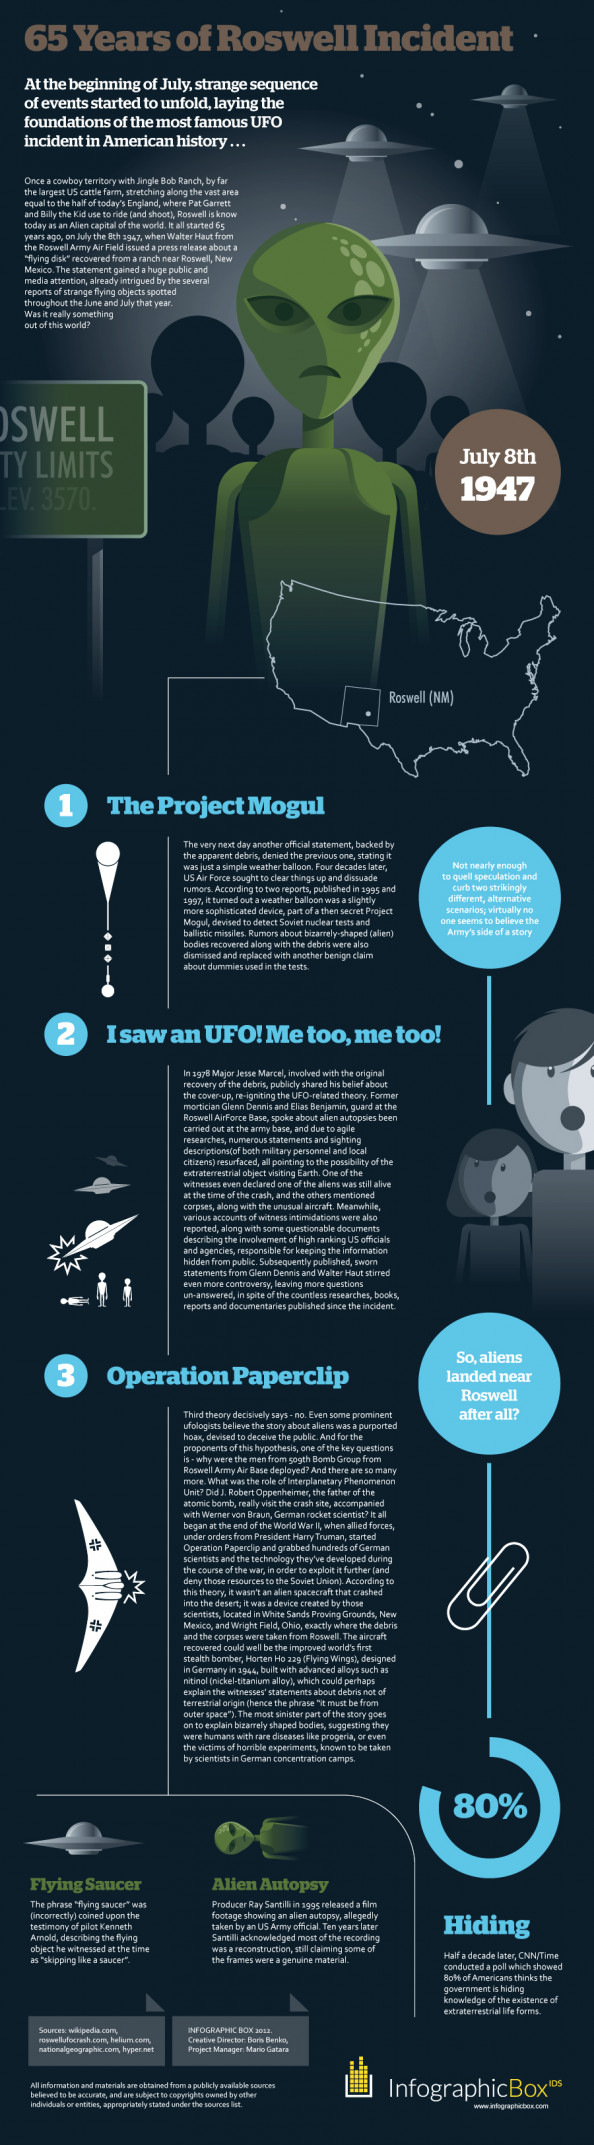 65 Years of Roswell Incident Infographic